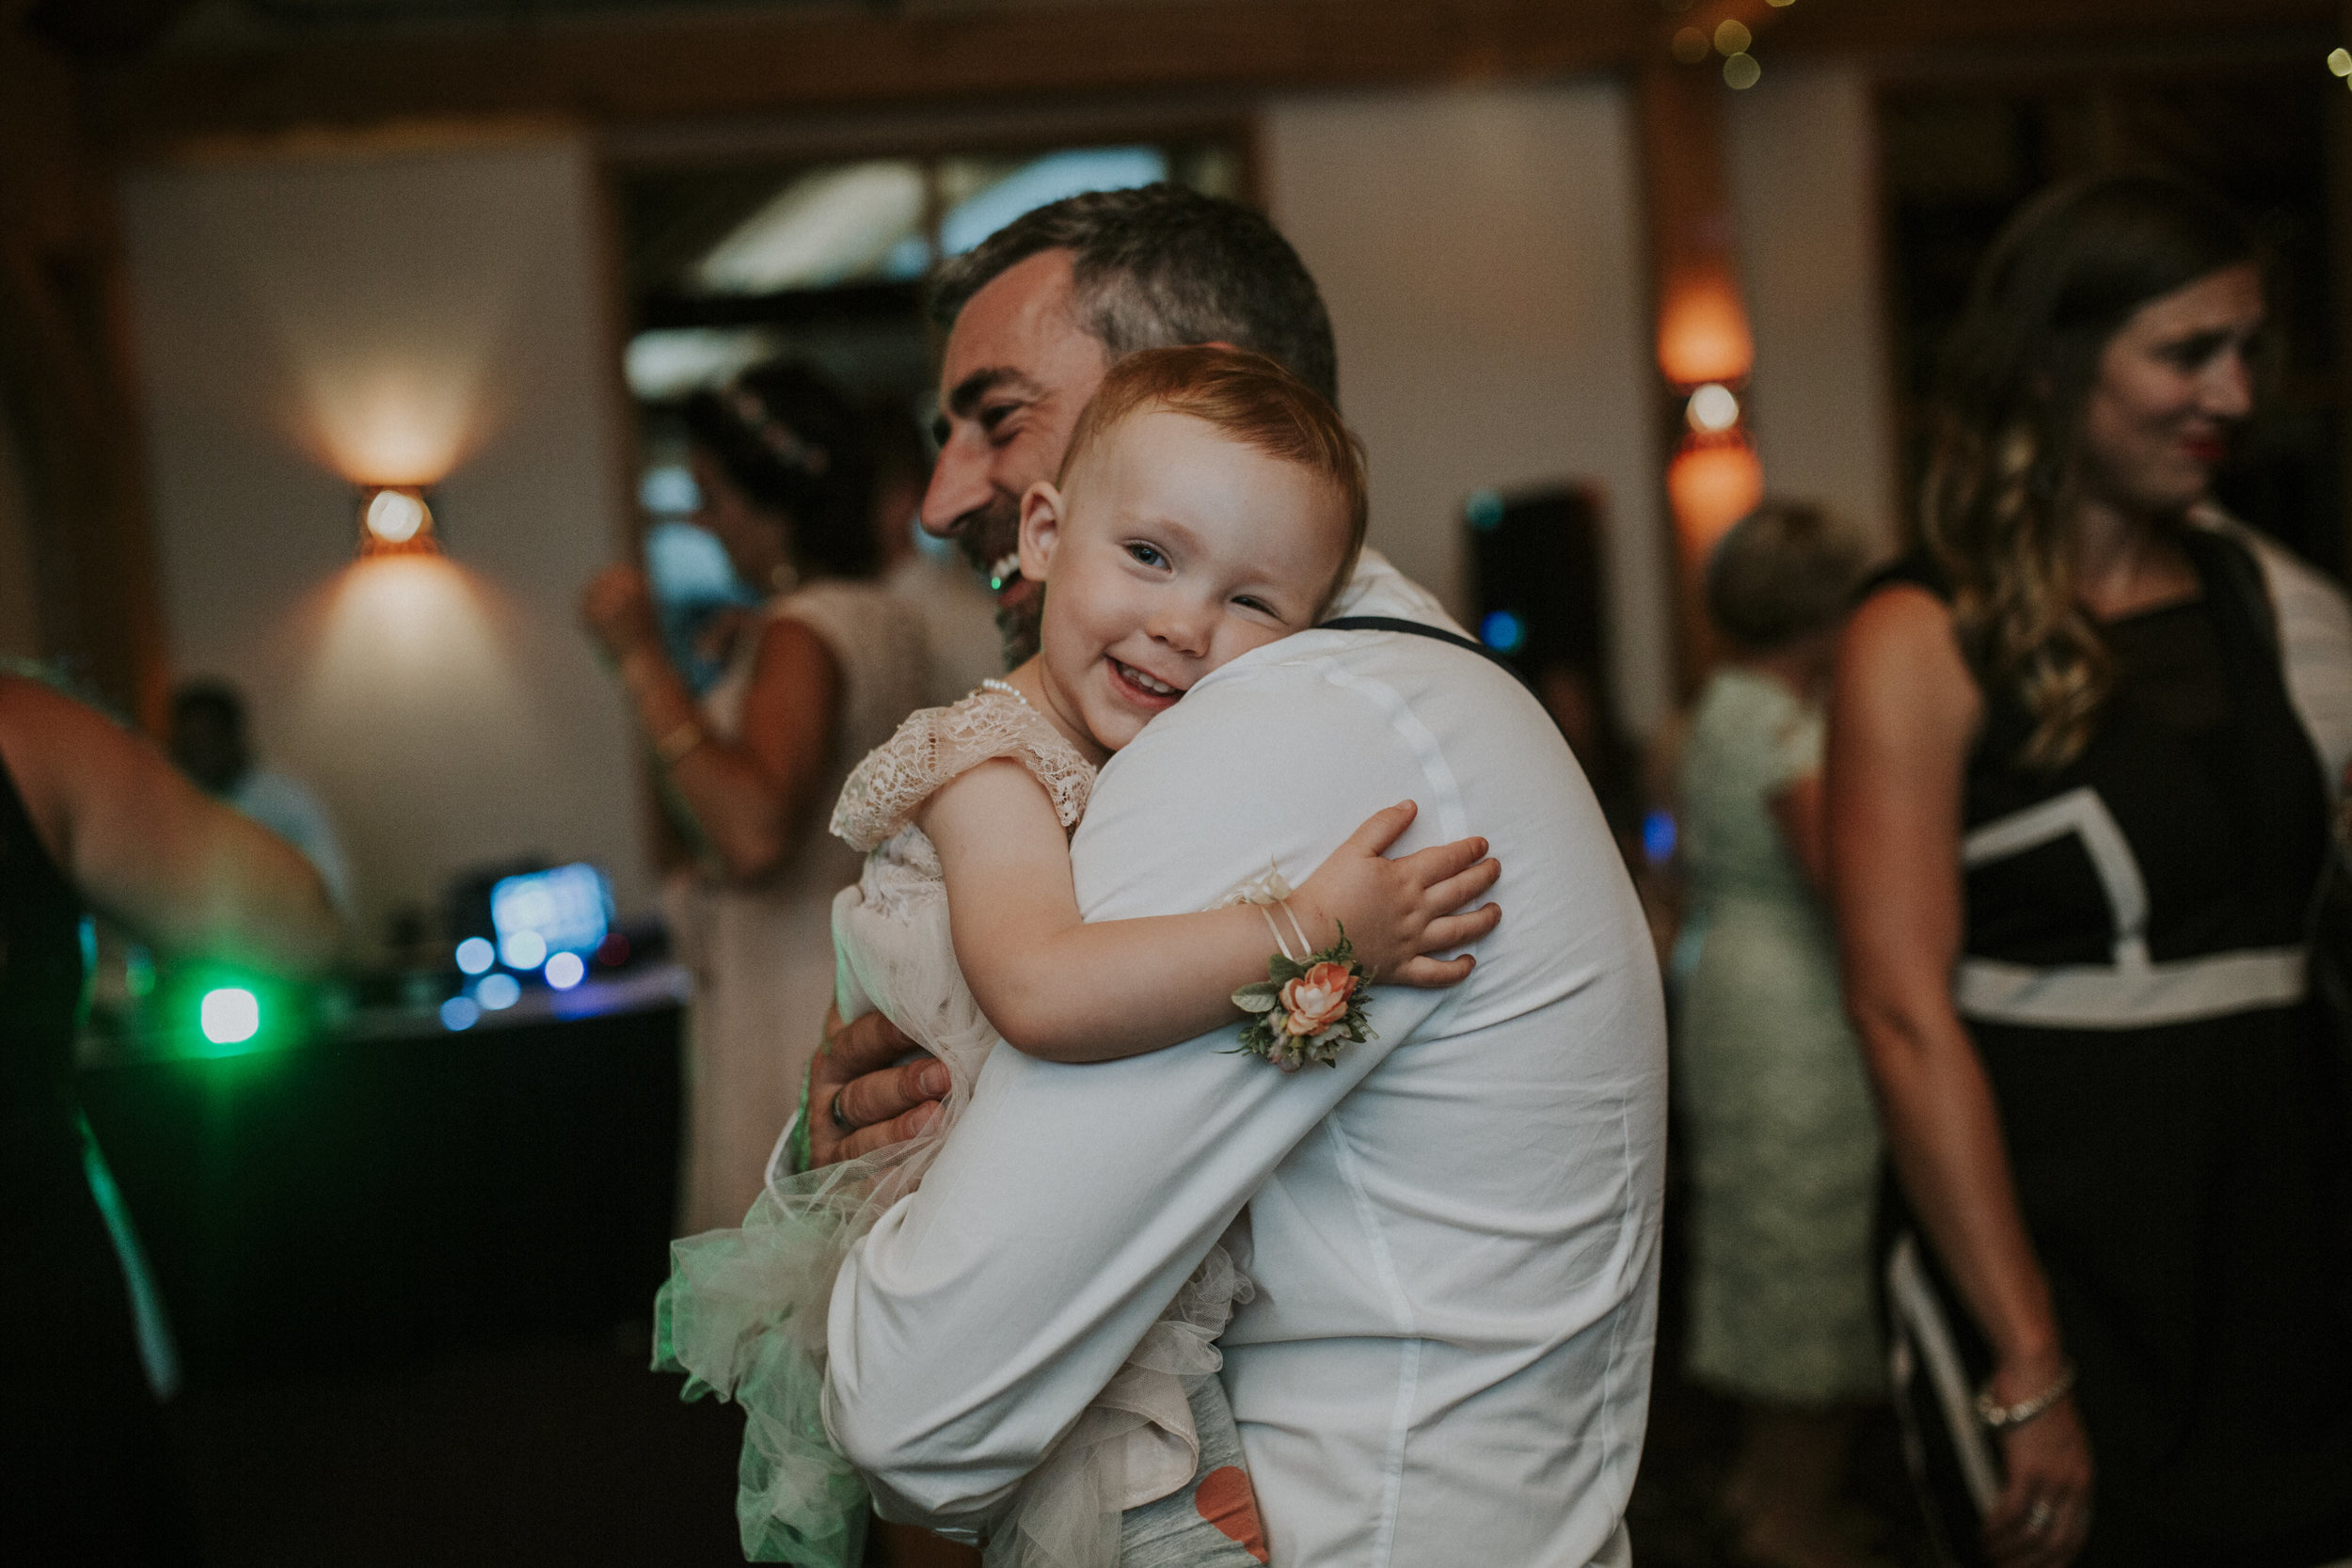 groom and daughter dance at wedding reception mt norquay banff